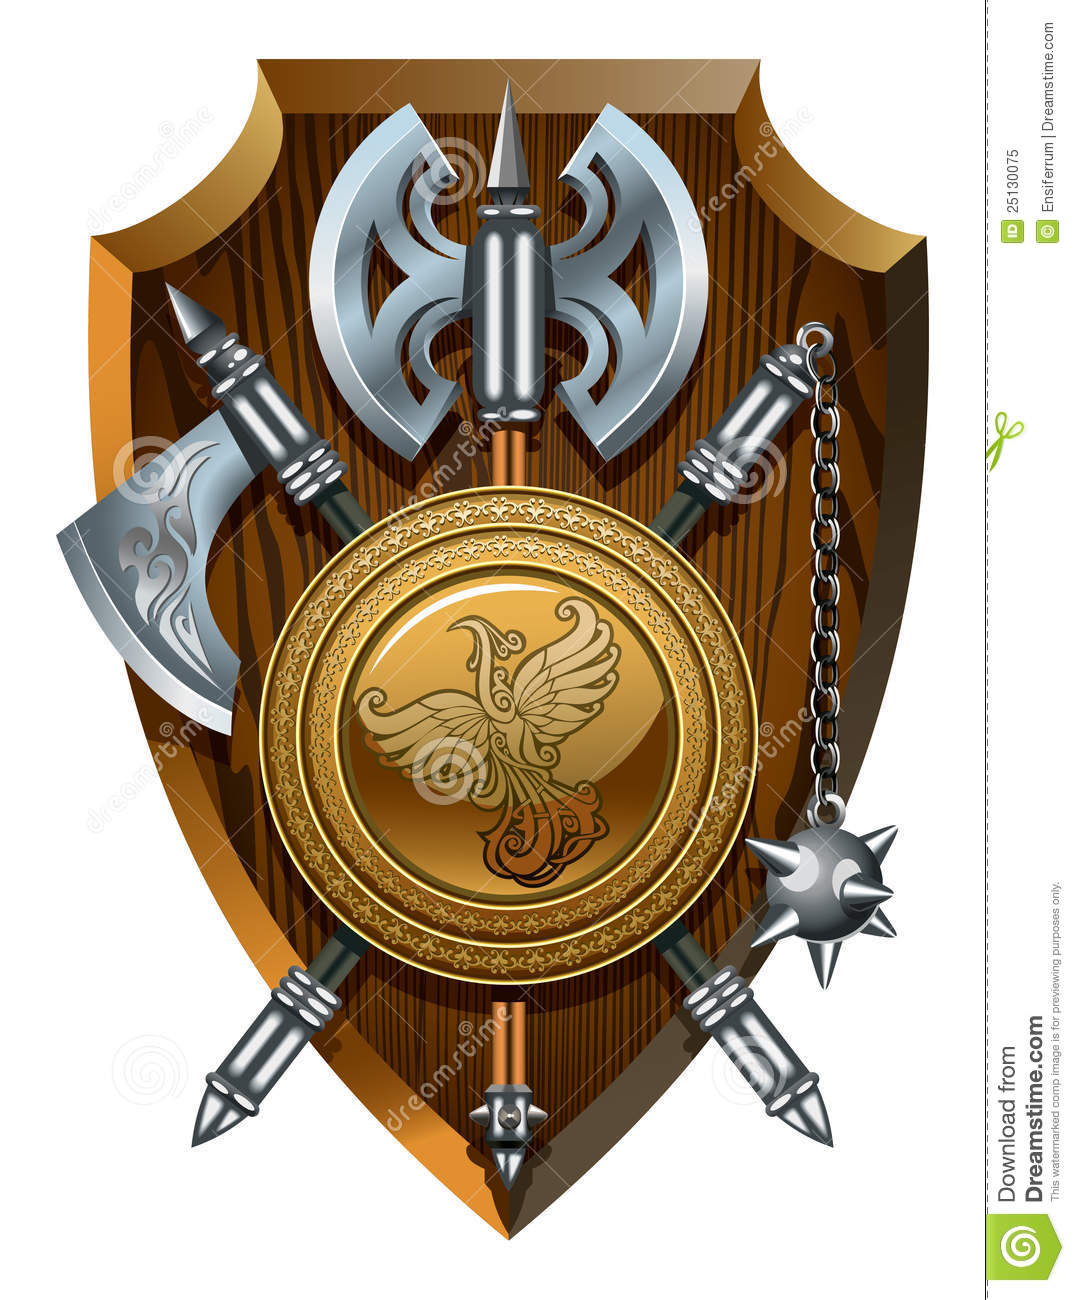 https://thumbs.dreamstime.com/z/coat-arms-25130075.jpg